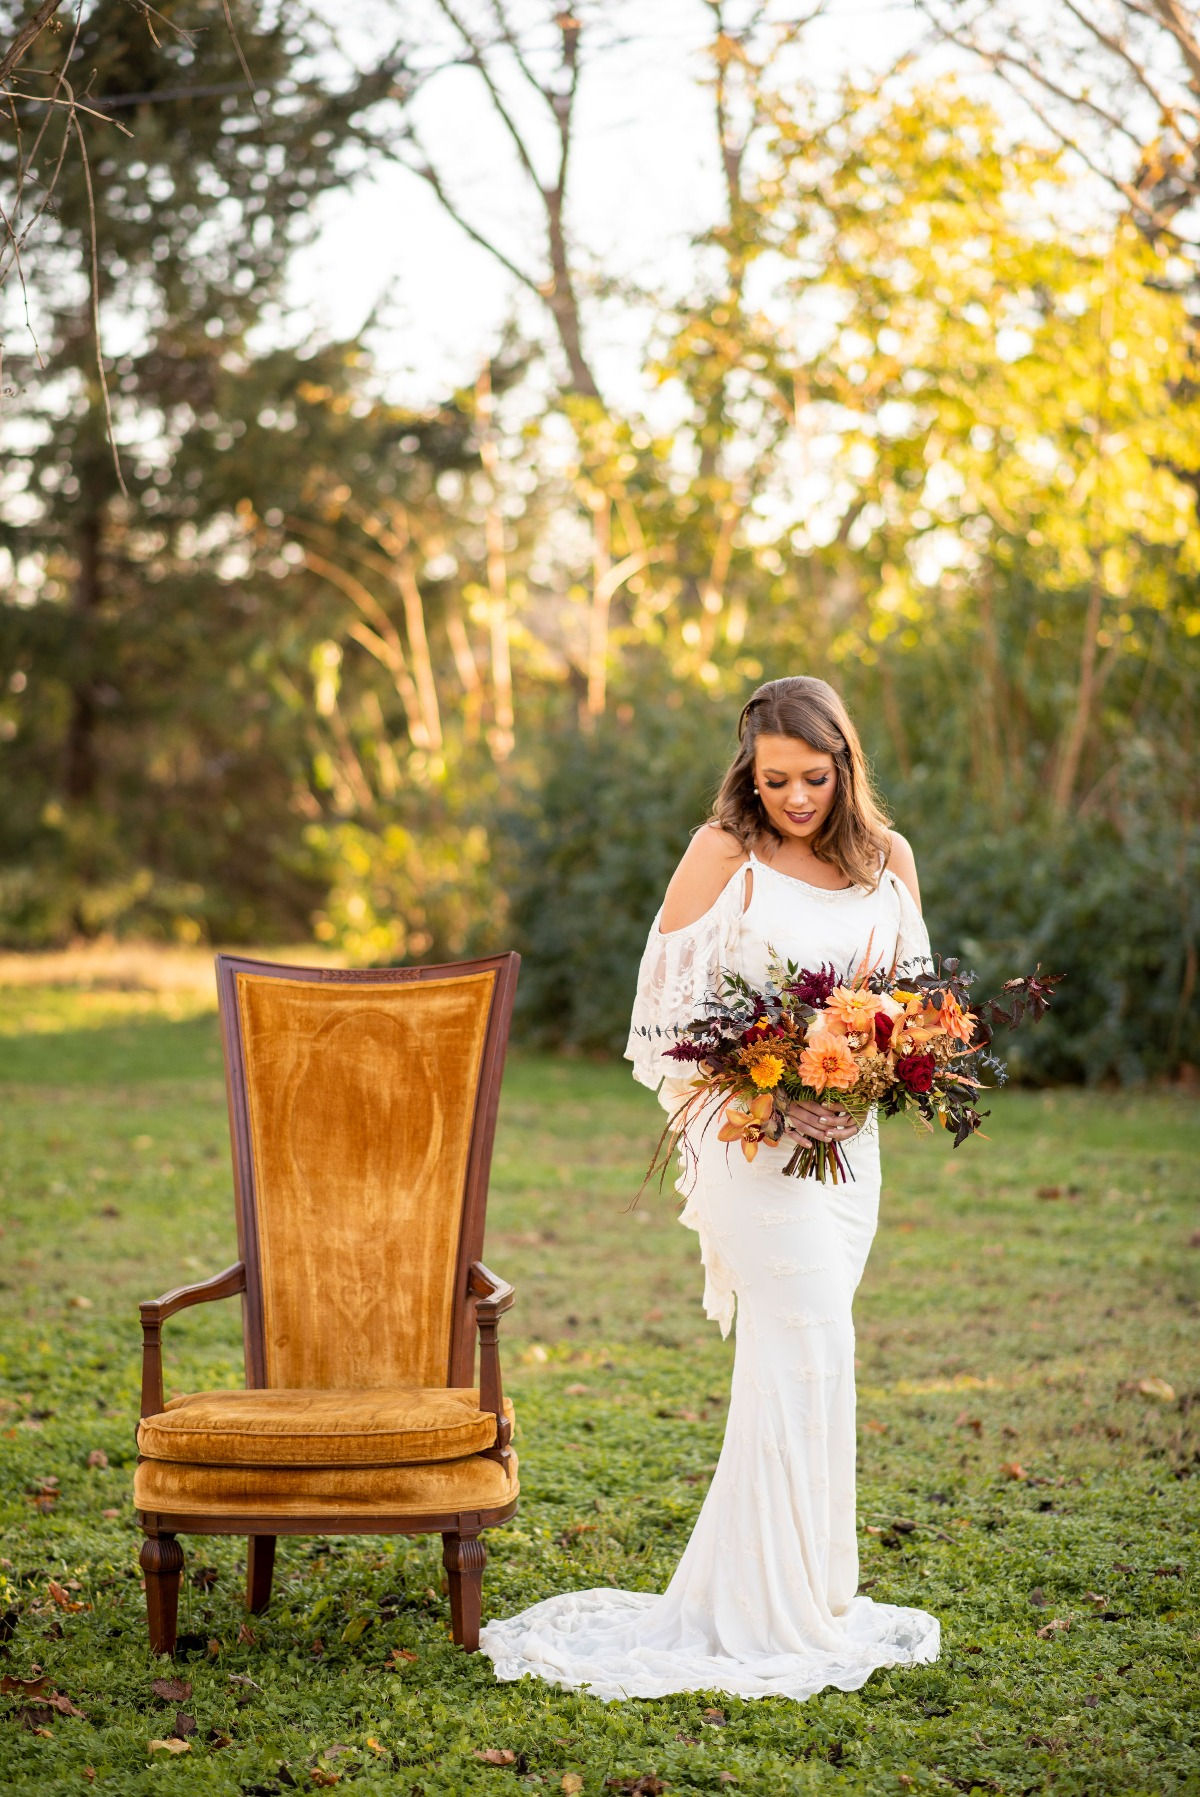 Boho lace wedding dress from Miss Madison Couture Boutique